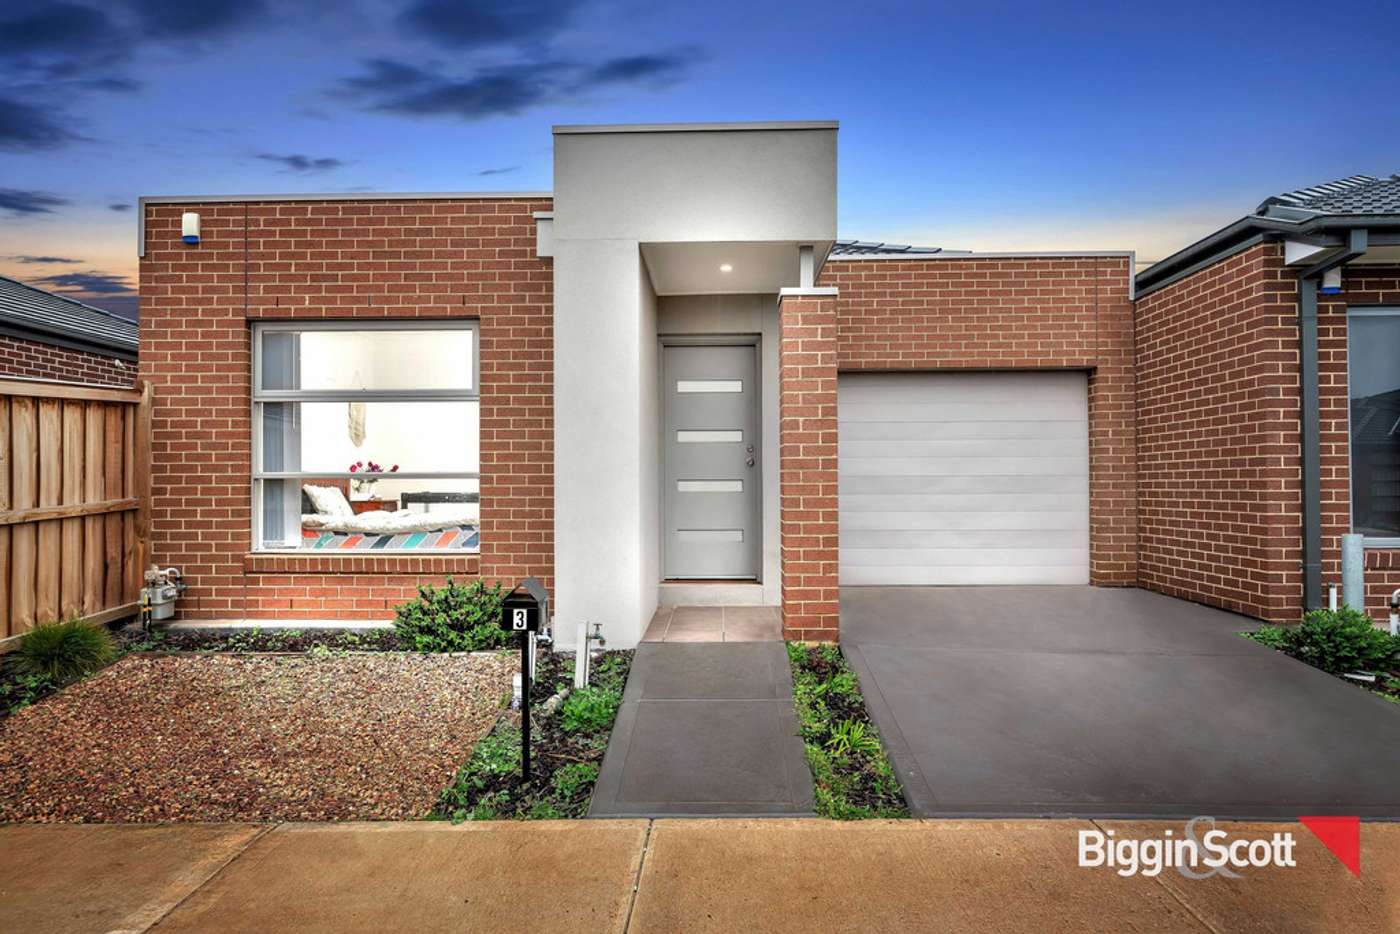 Main view of Homely house listing, 3 Cheer Terrace, Tarneit VIC 3029